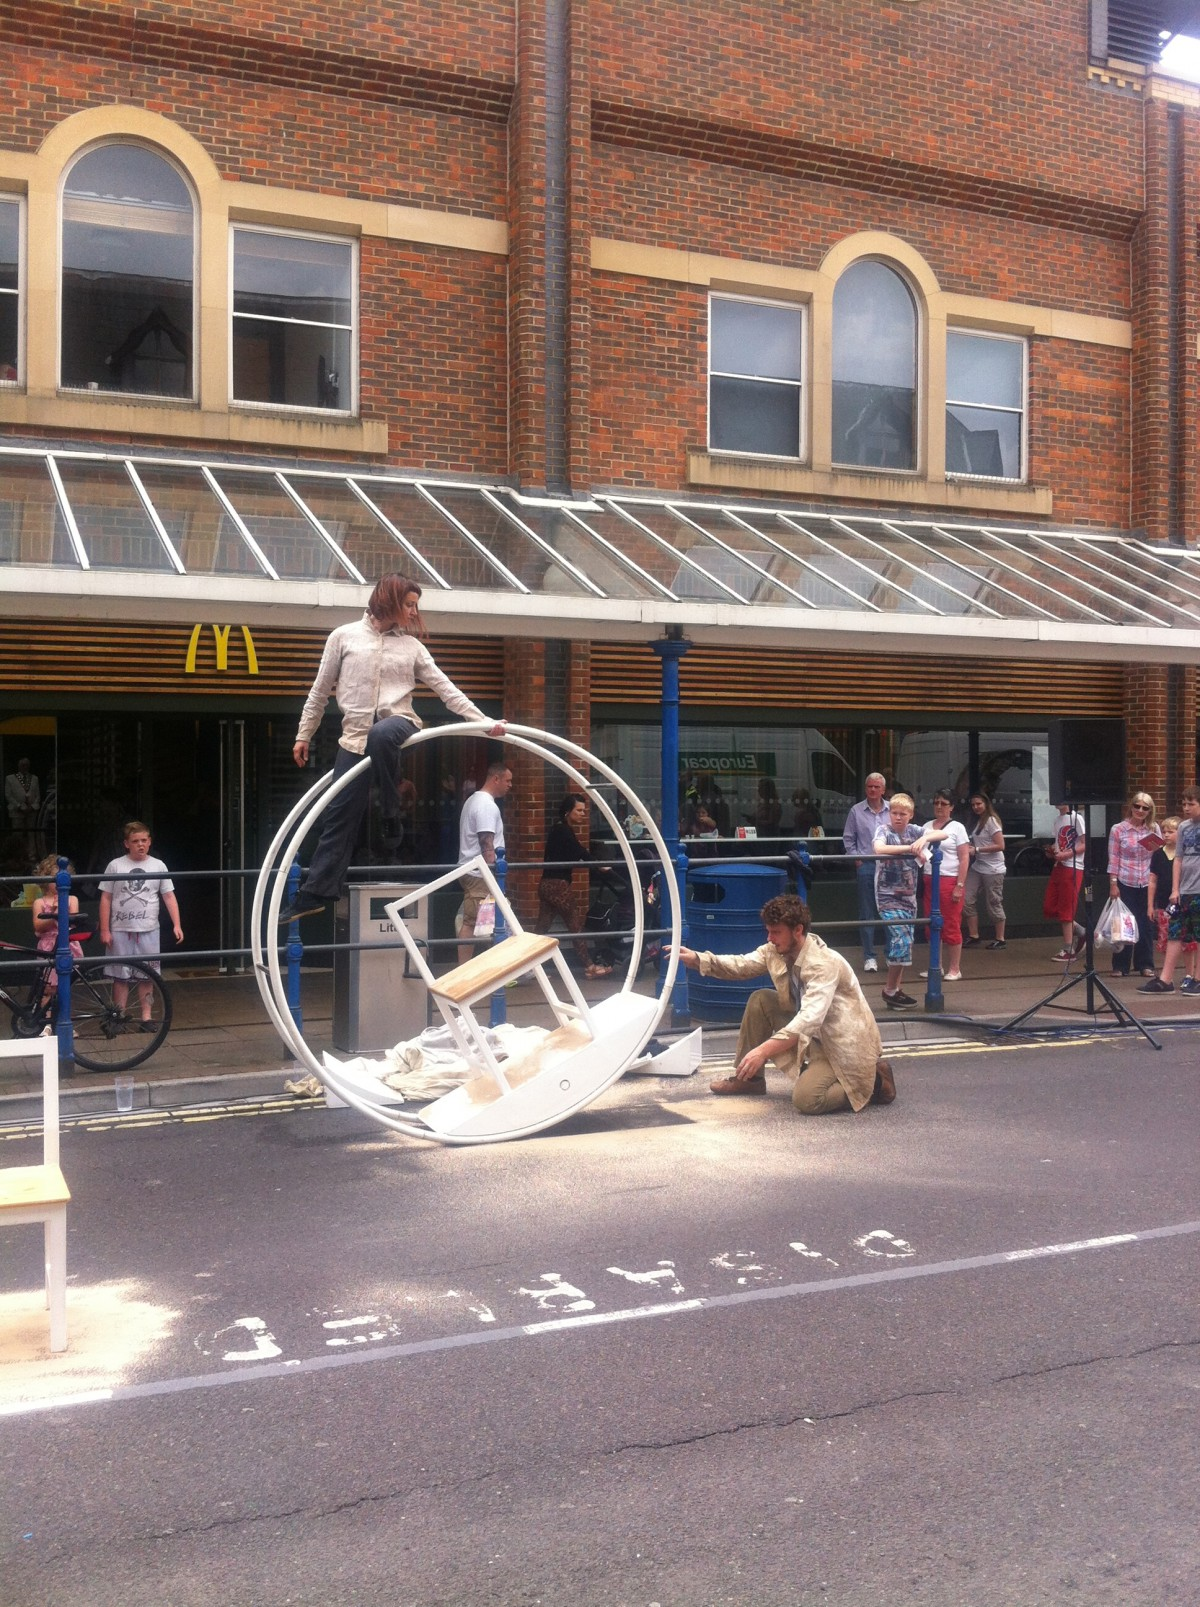 Eastleigh Unwrapped – Circus in the Streets